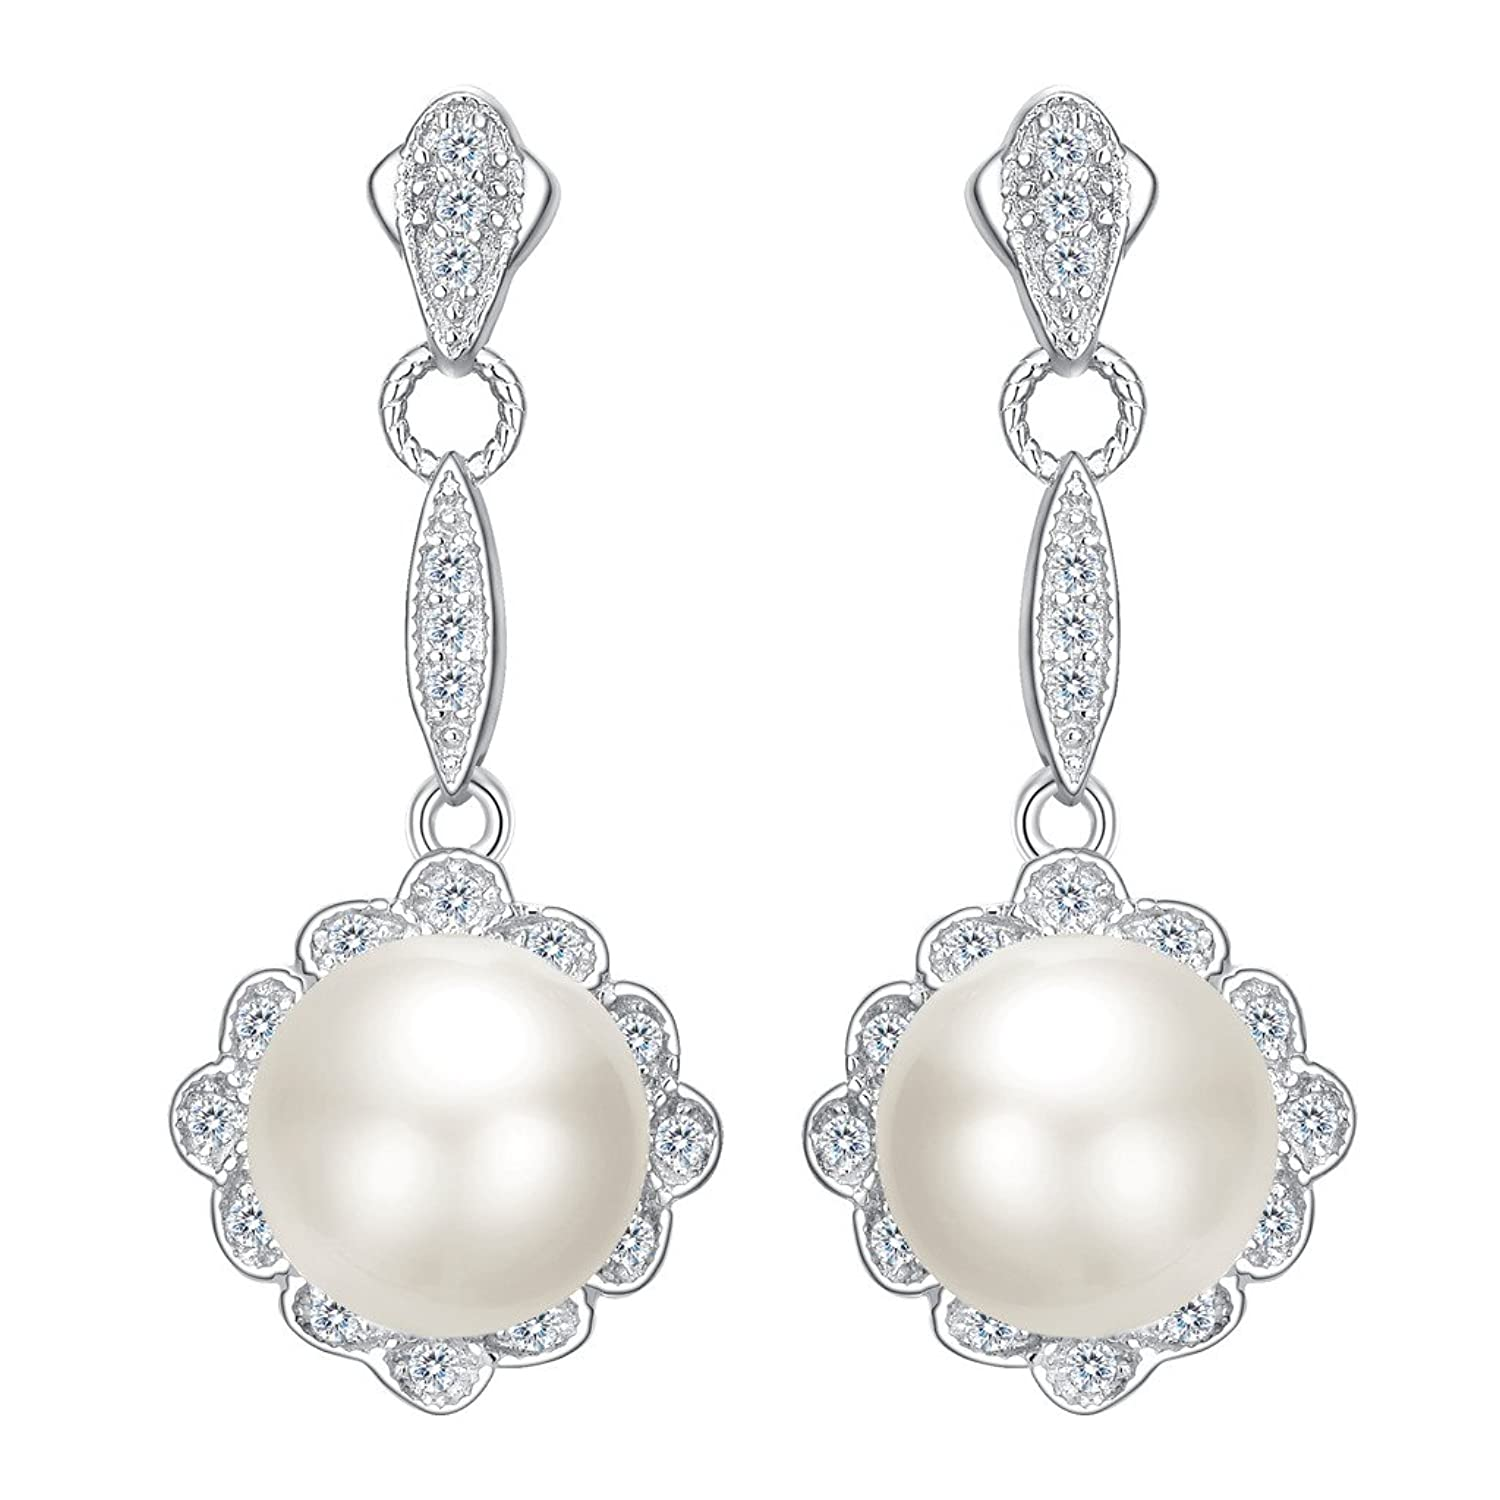 EVER FAITH 925 Sterling Silver CZ 9MM AAA Freshwater Cultured Pearl Elegant Floral Dangle Earrings Clear